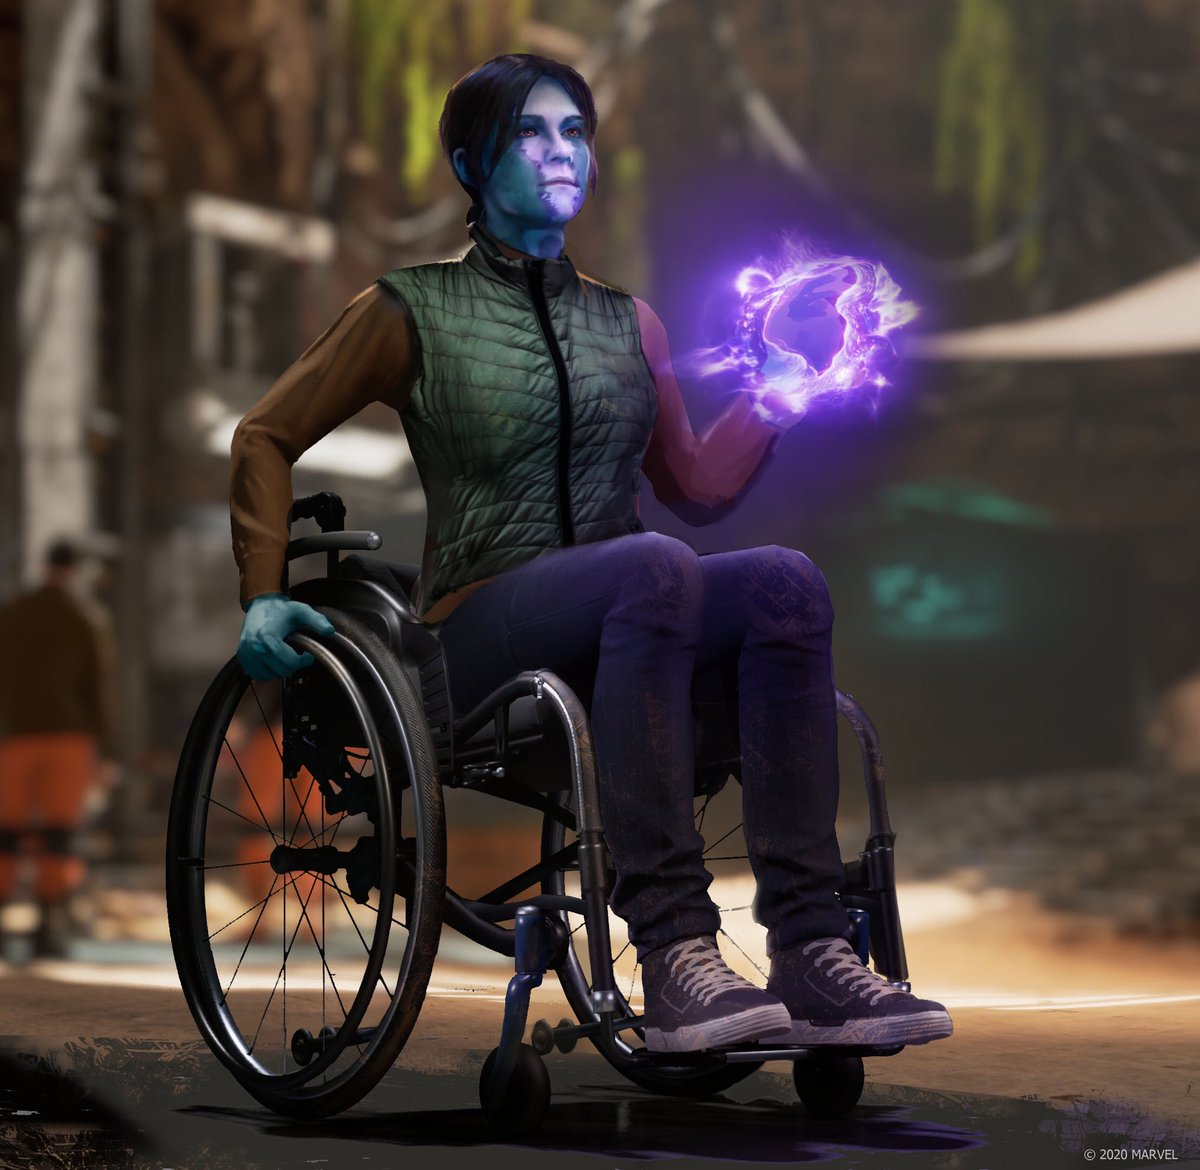 A character with special powers in a wheelchair holding some kind of ball of energy. She has blue skin, a pony tail, jeans and cute shoes. Her wheelchair is modern and sleek